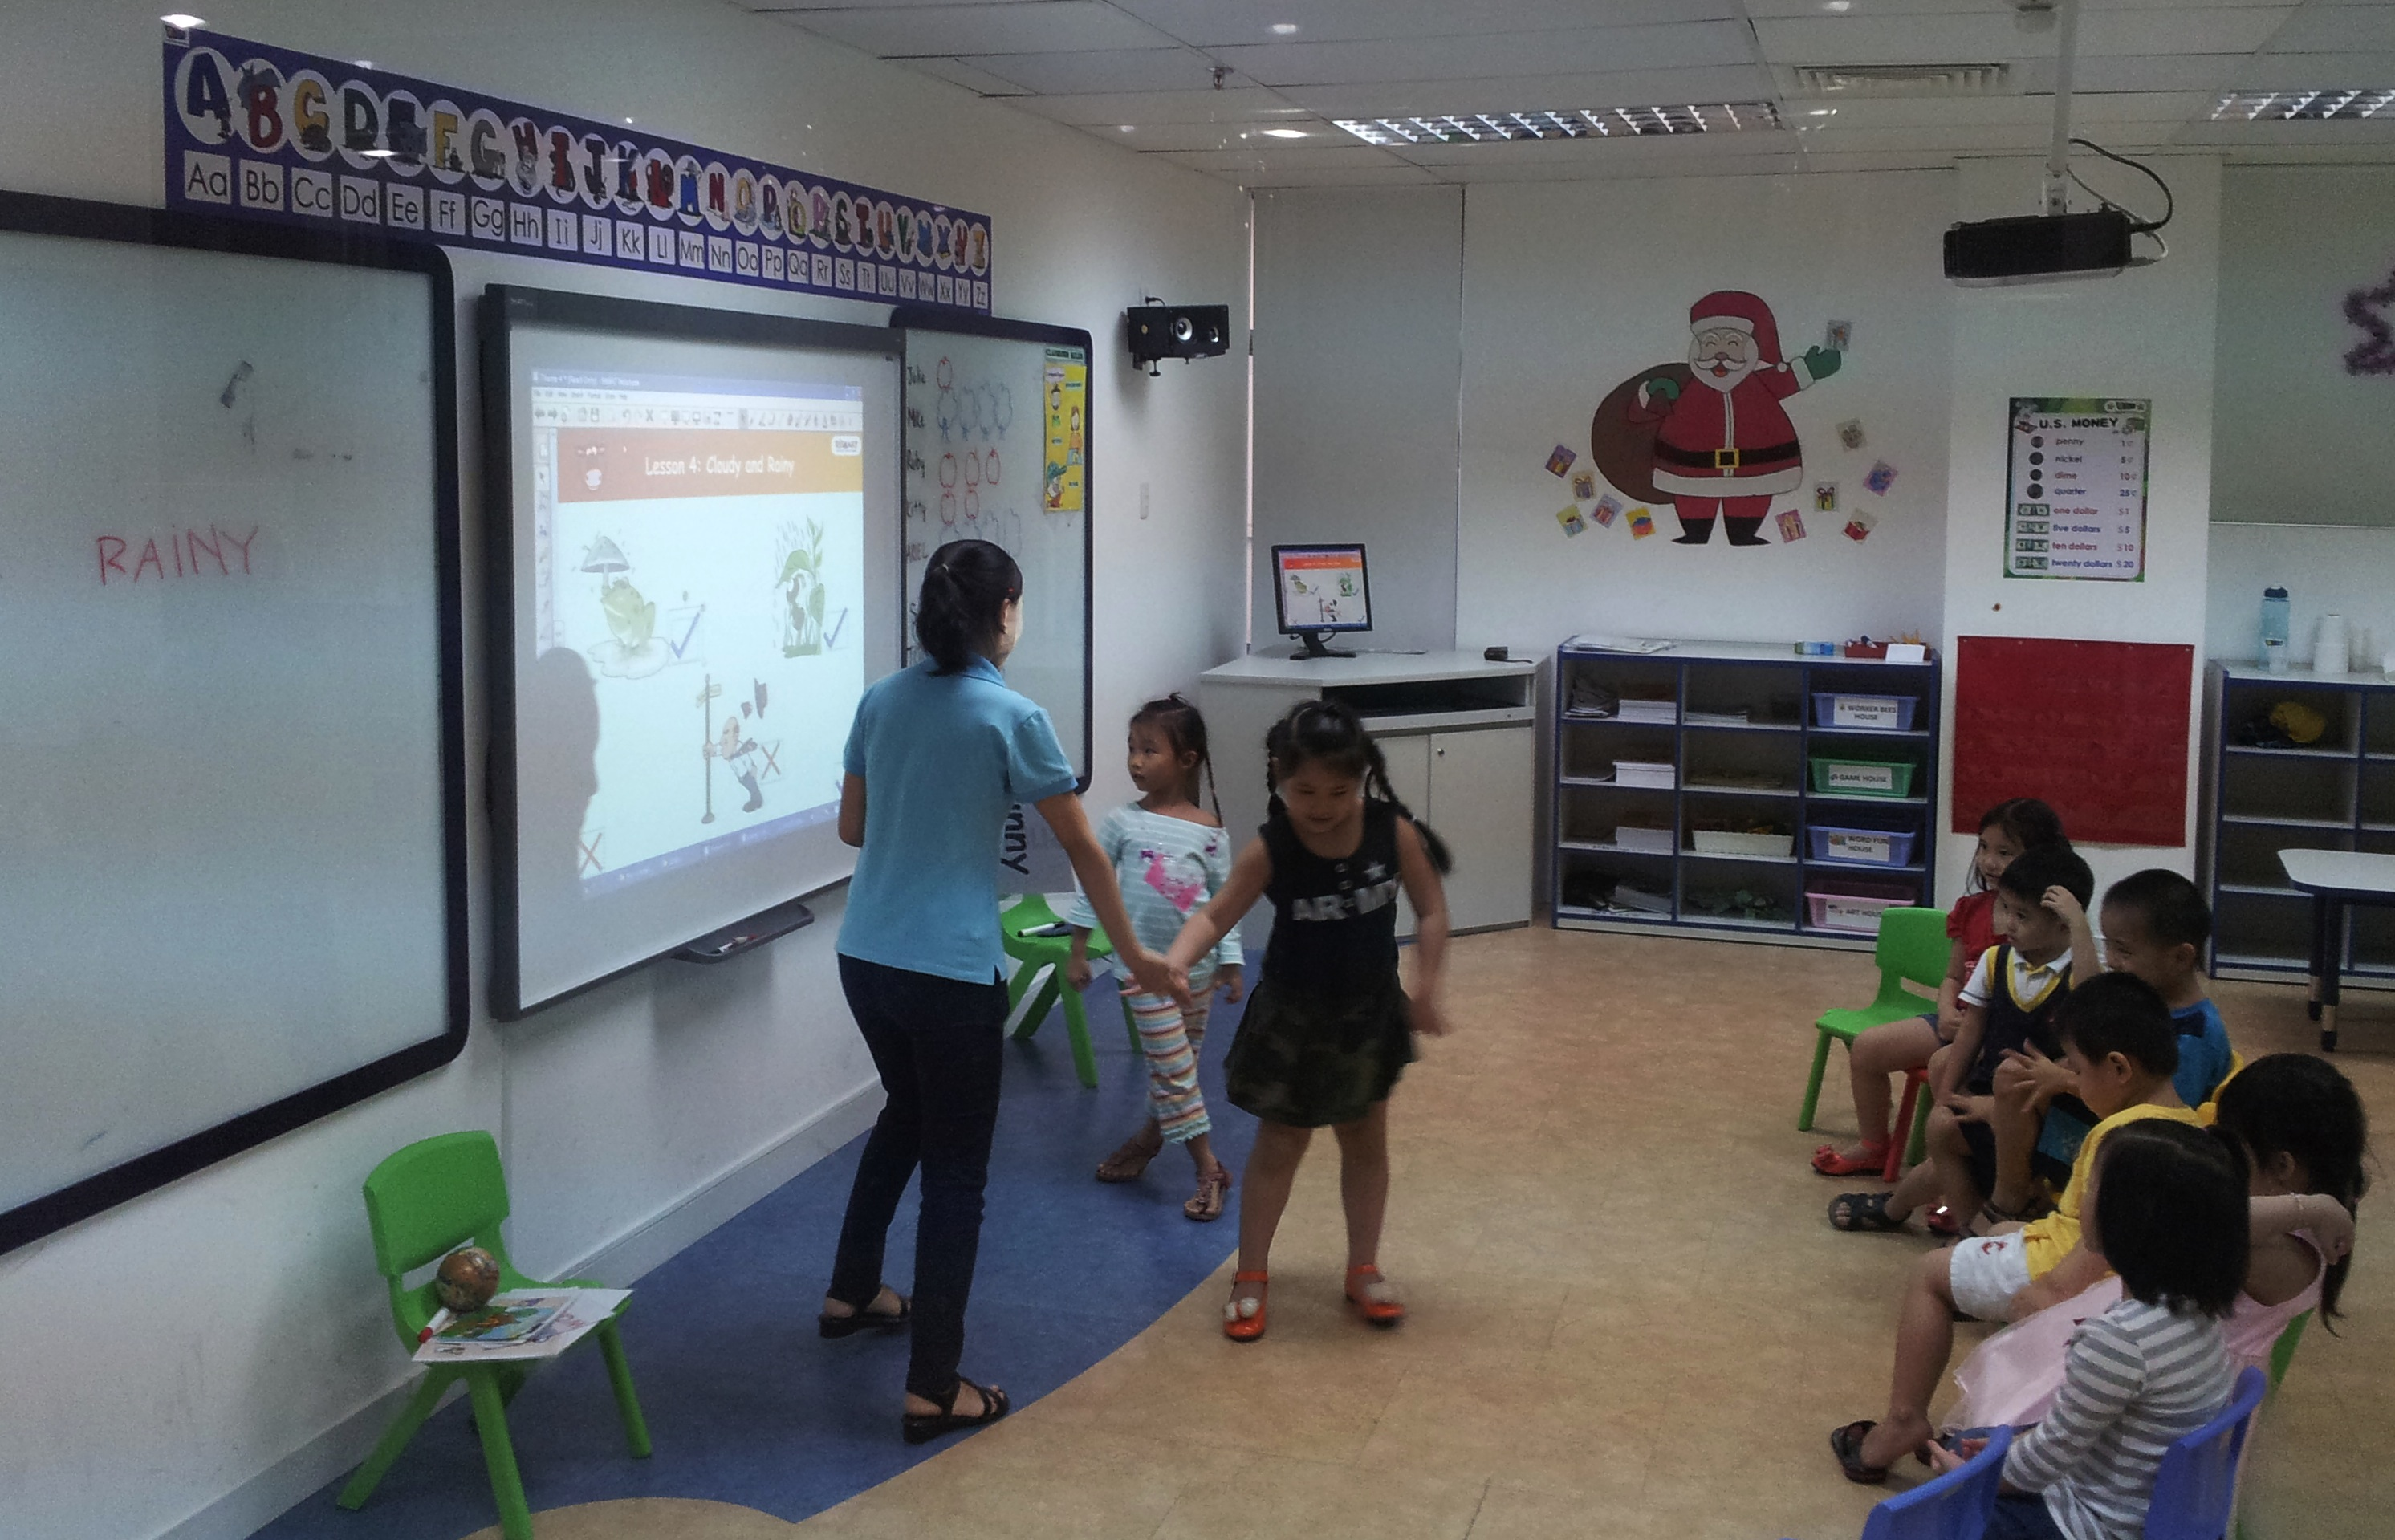 A classroom at RISE, an English language learning program in Vietnam.